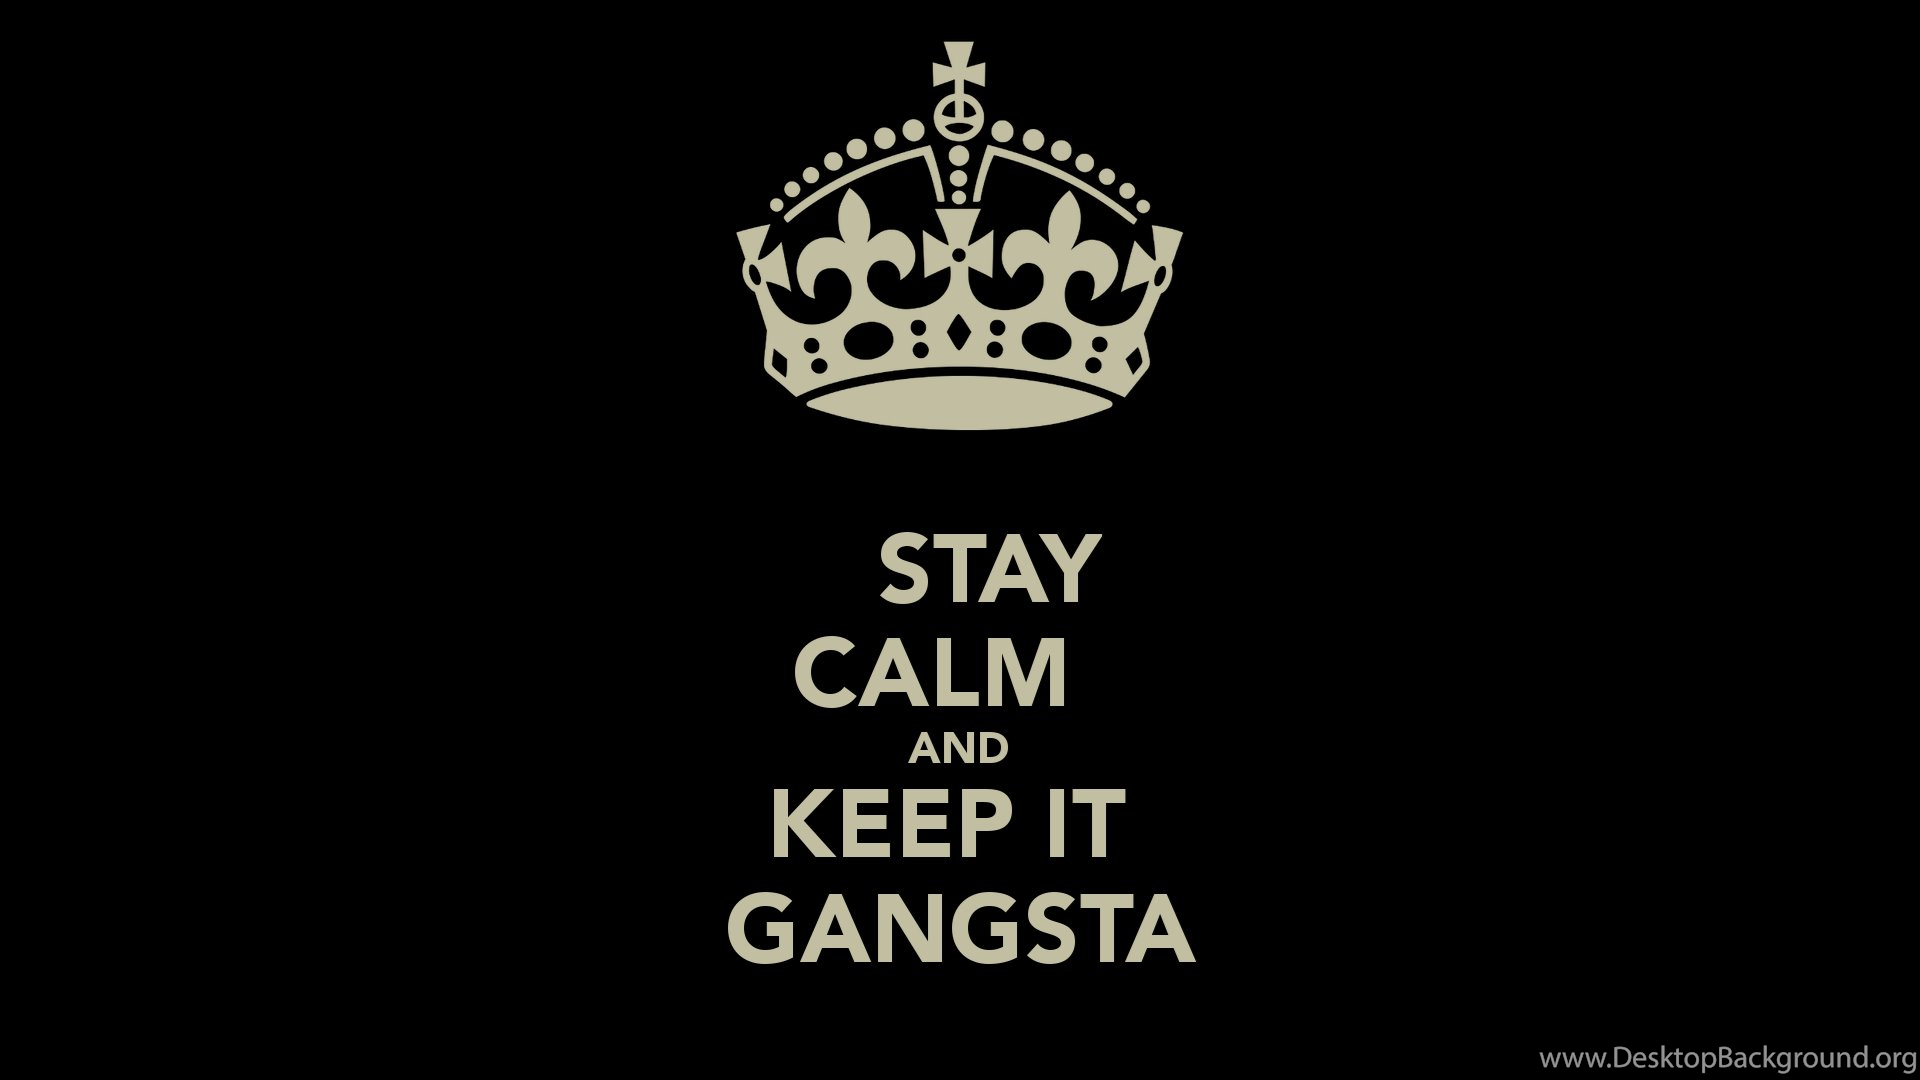 Gangster Wallpapers High Quality Resolution Jf5def Free Download